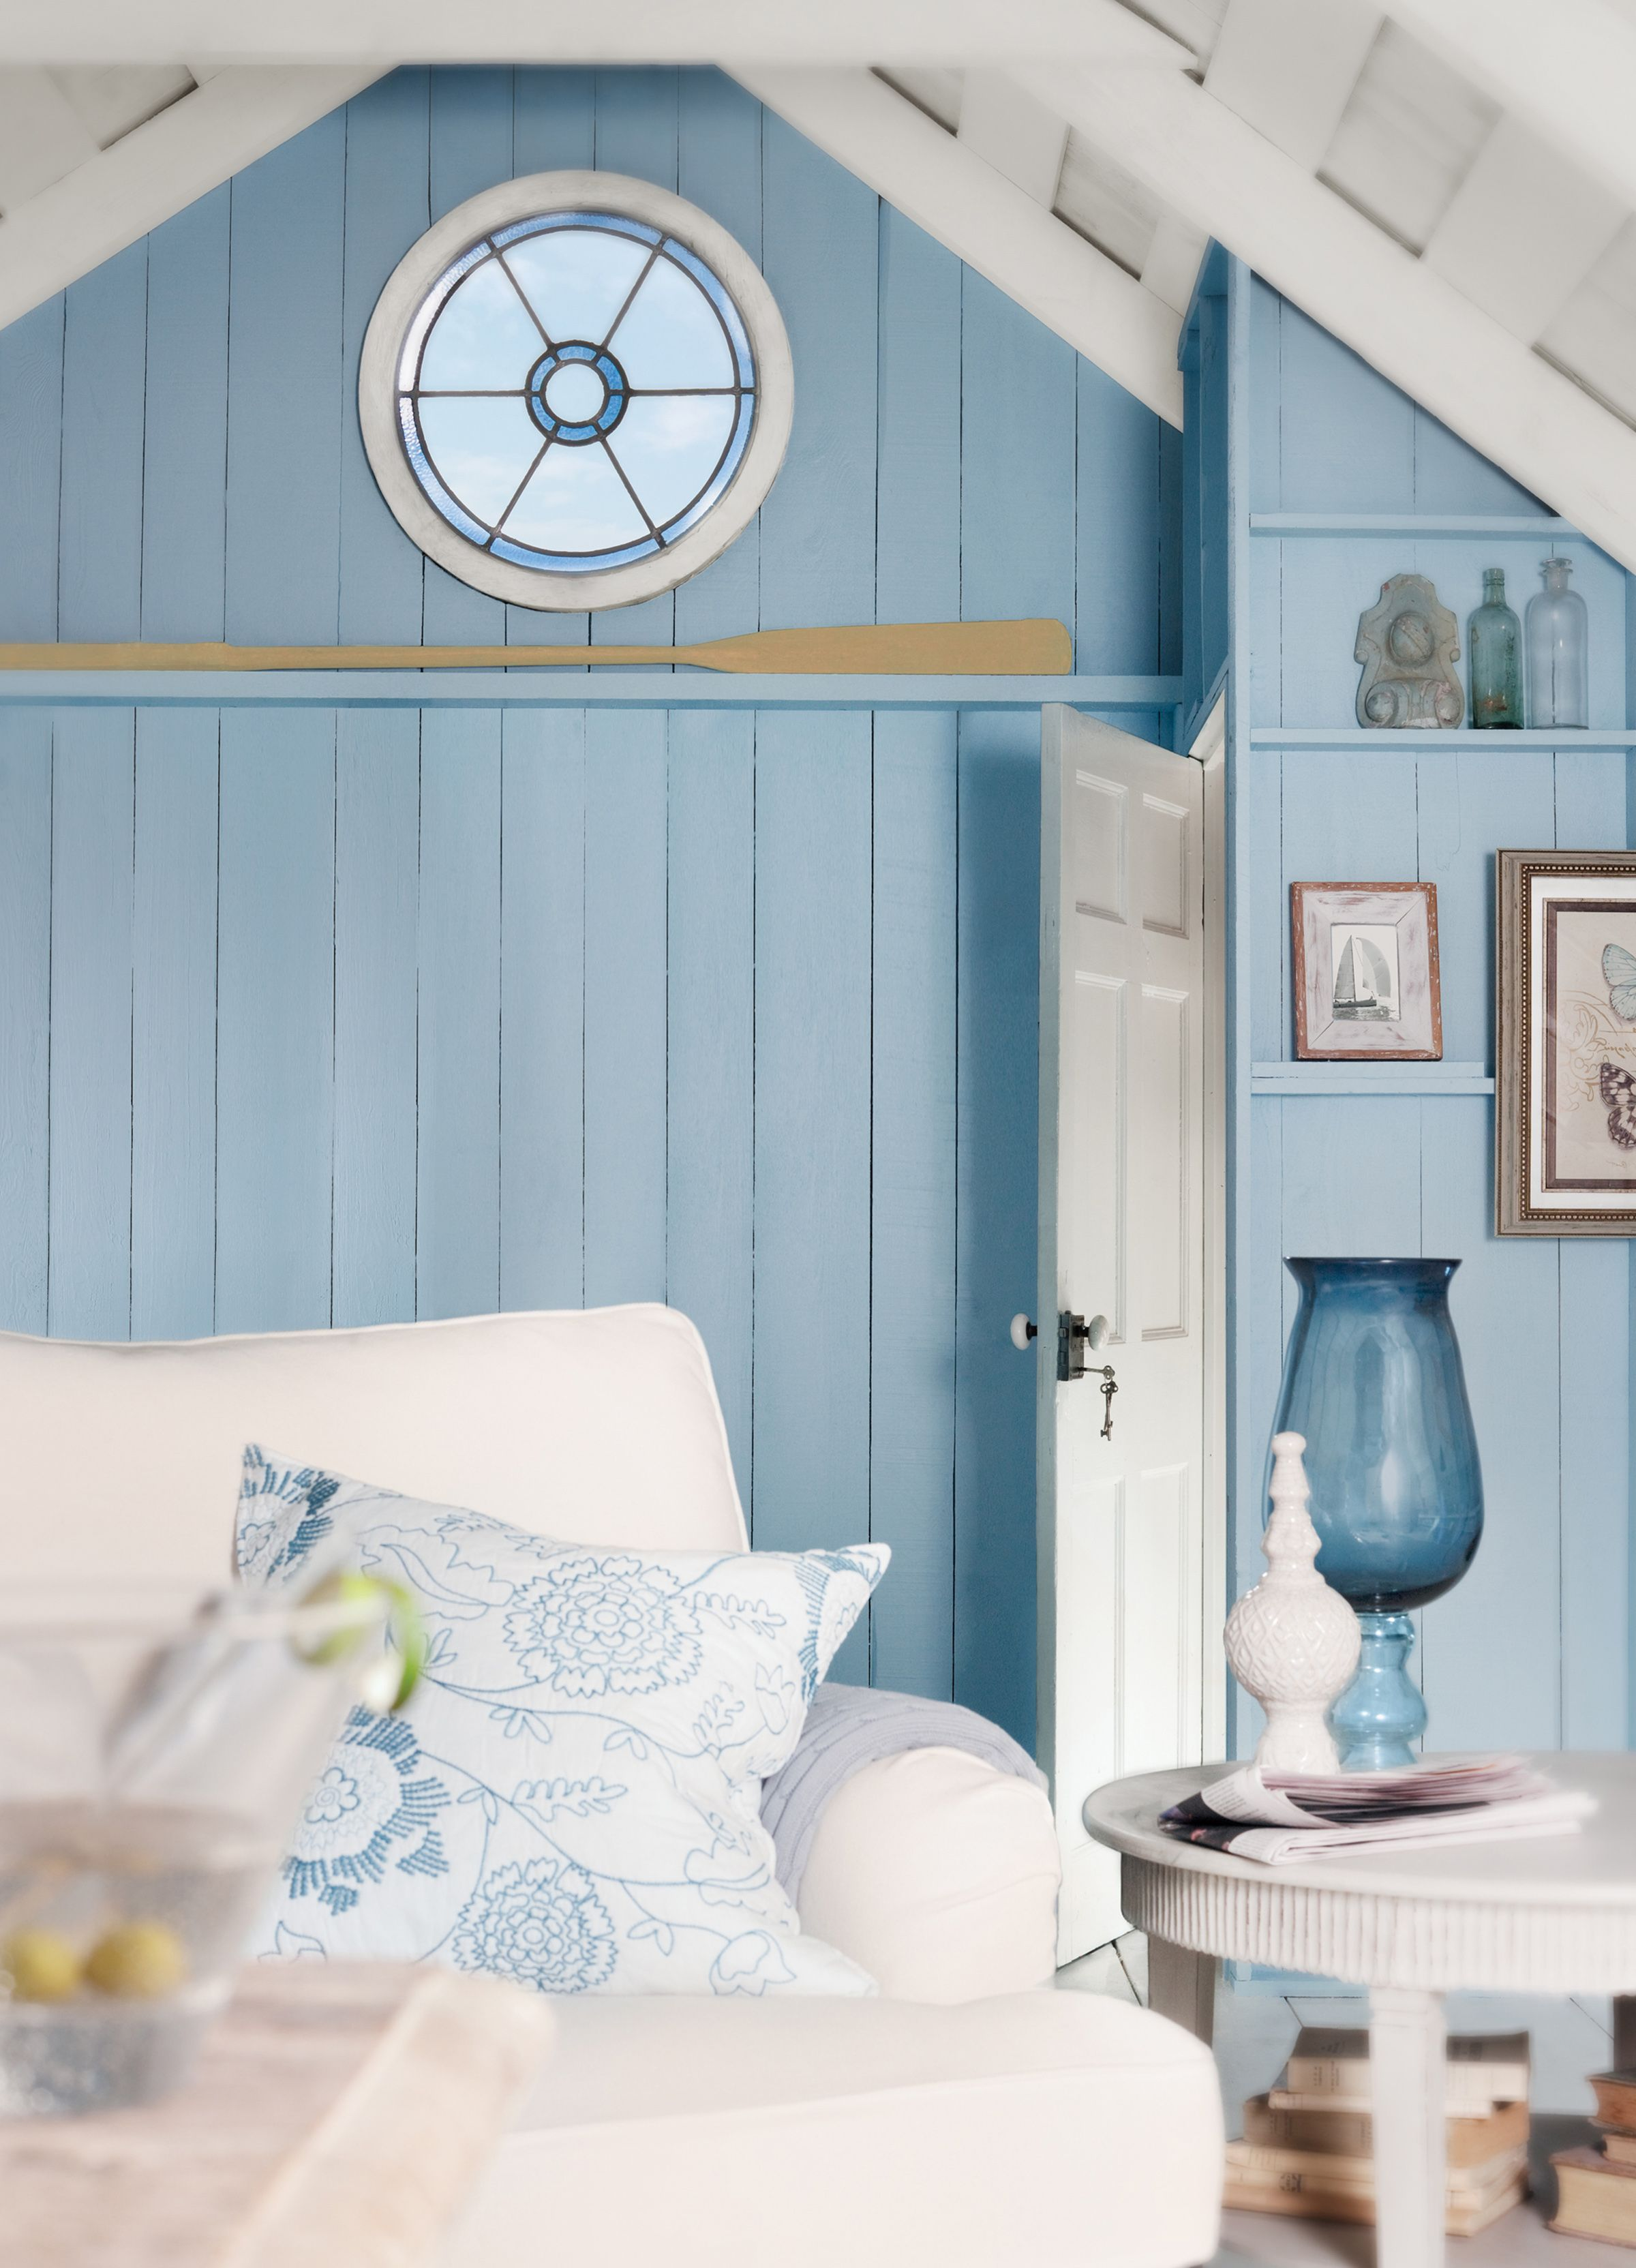 The Oar Great Stained Gl Window Against Ocean Blue Wall Give Such A Casual Beachy Feel